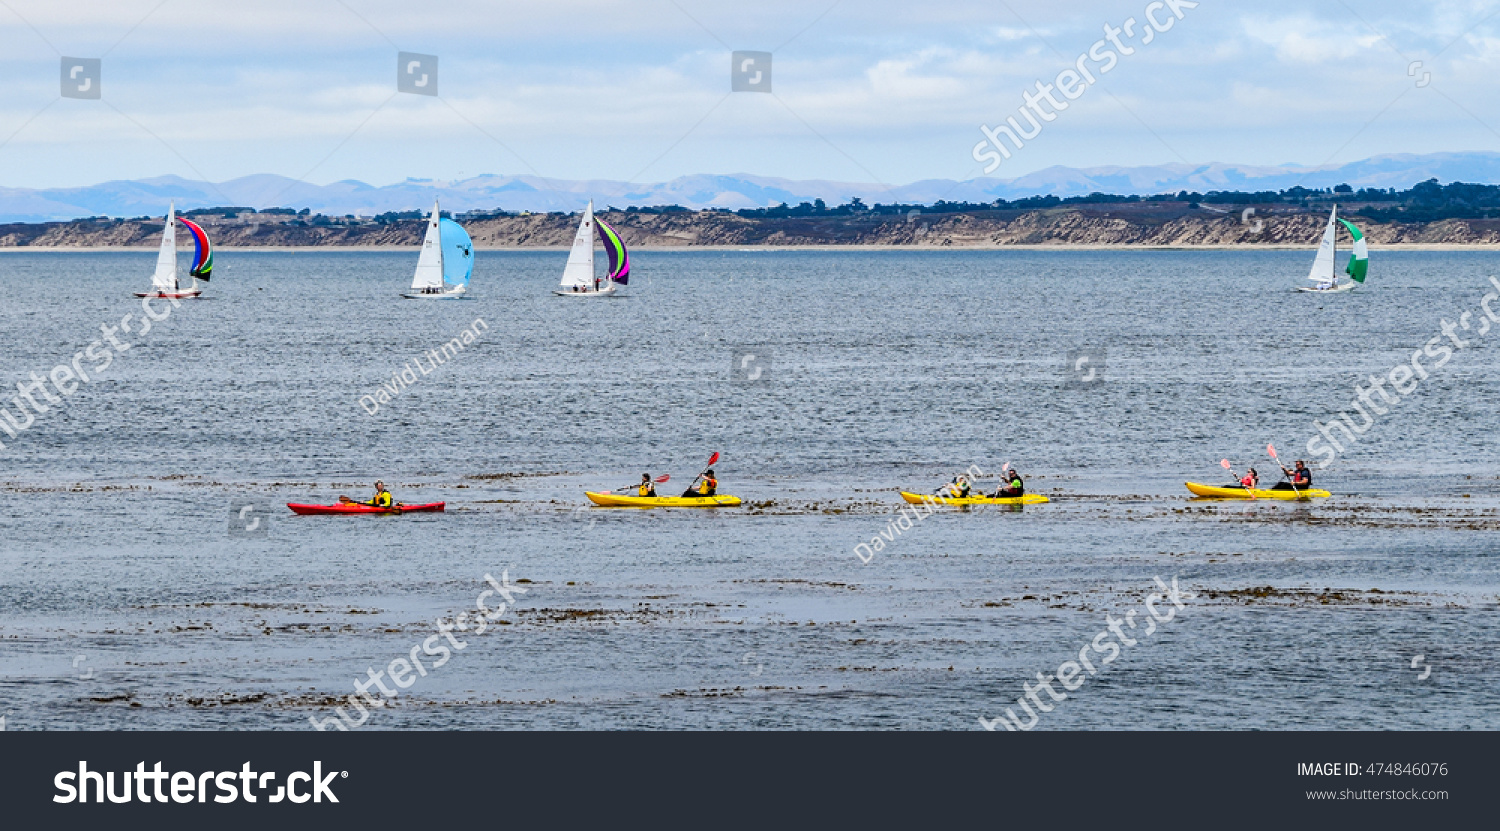 Monterey, California - June 28, 2016: Boaters (sailboats) and kayakers  enjoy their water sports, recreation,  and active lifestyle on a calm summer day on Monterey Bay.